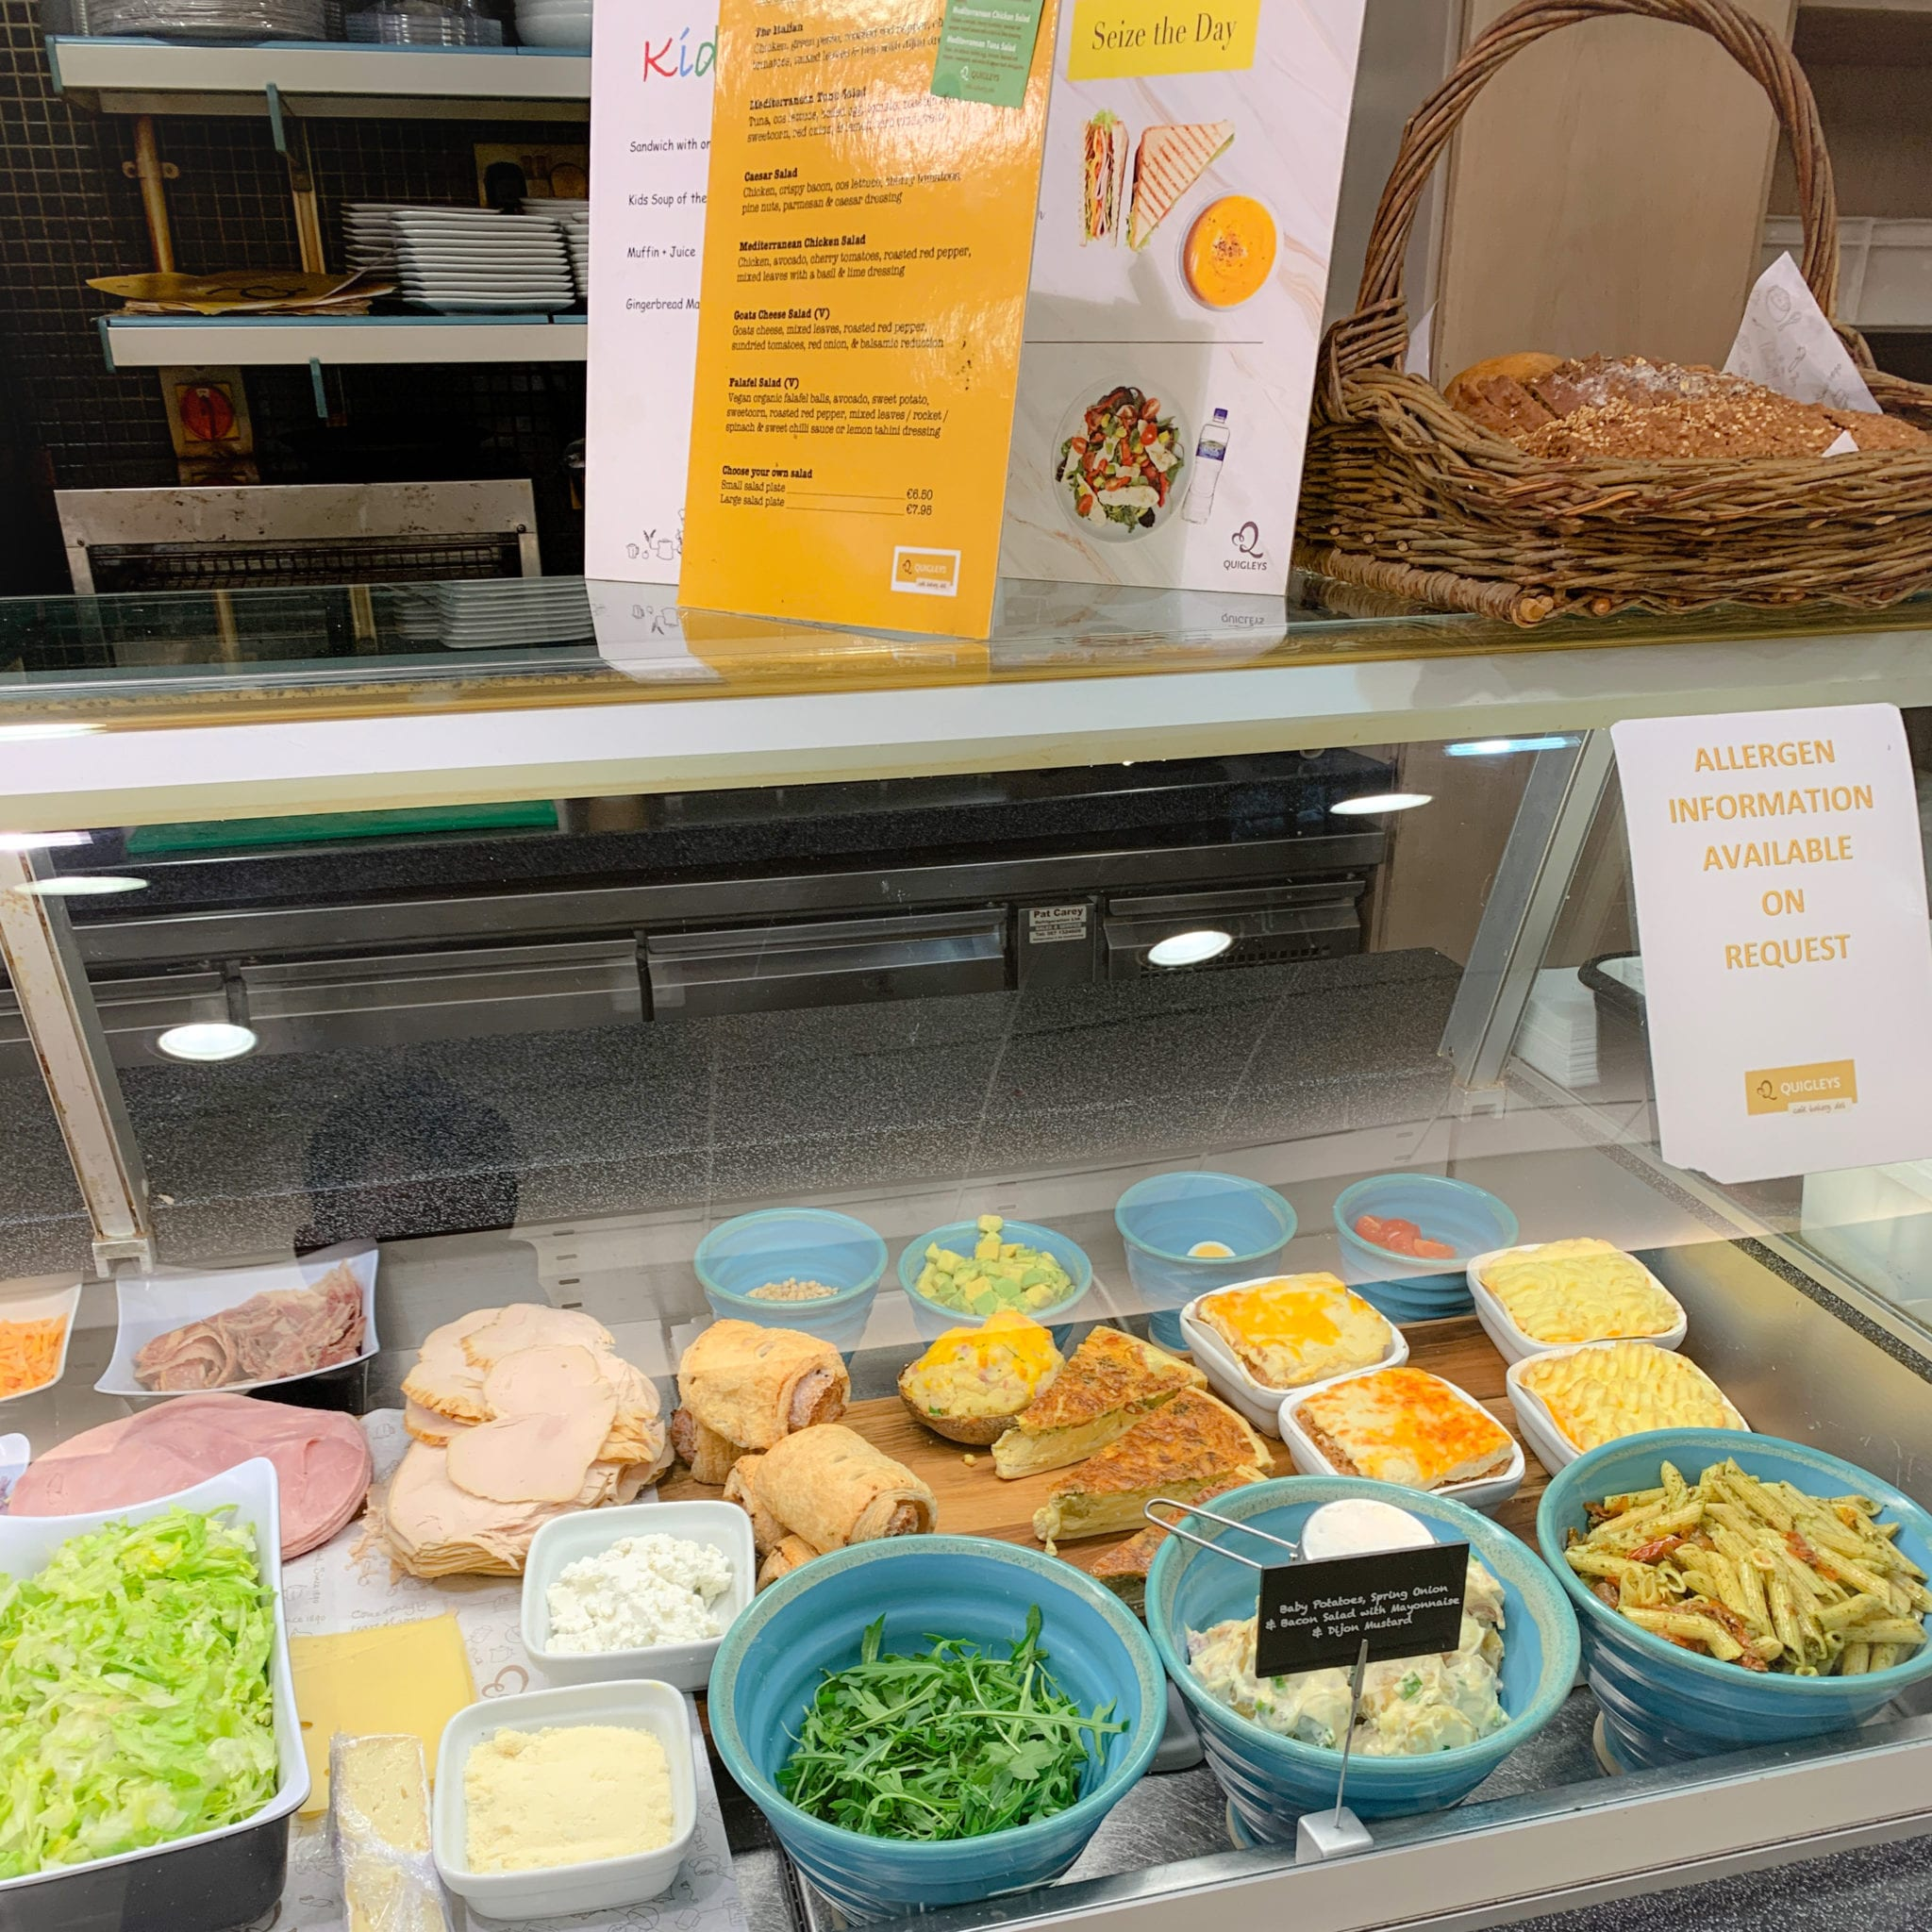 Cold meats, salad, pastas and quiche displayed in Quigley's deli